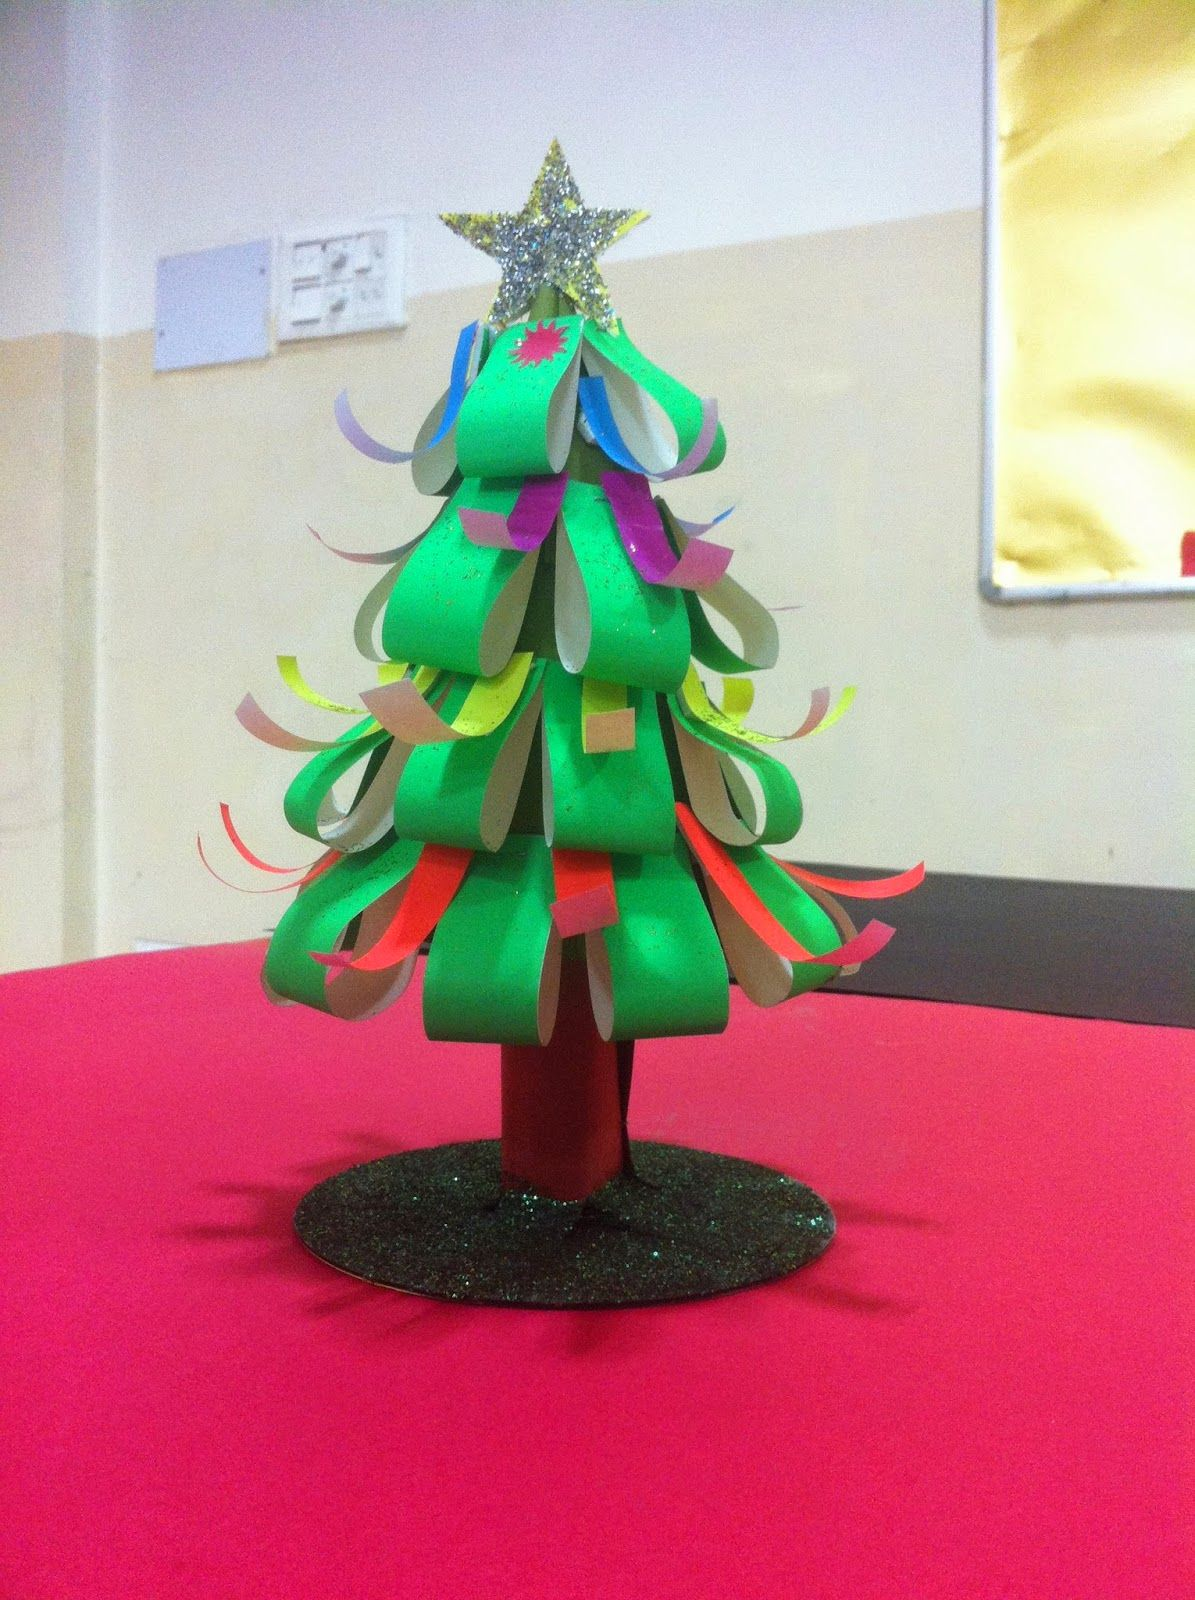 Making christmas decorations in school - Art Craft Ideas And Bulletin Boards For Elementary Schools Easy Christmas Craft Christmas